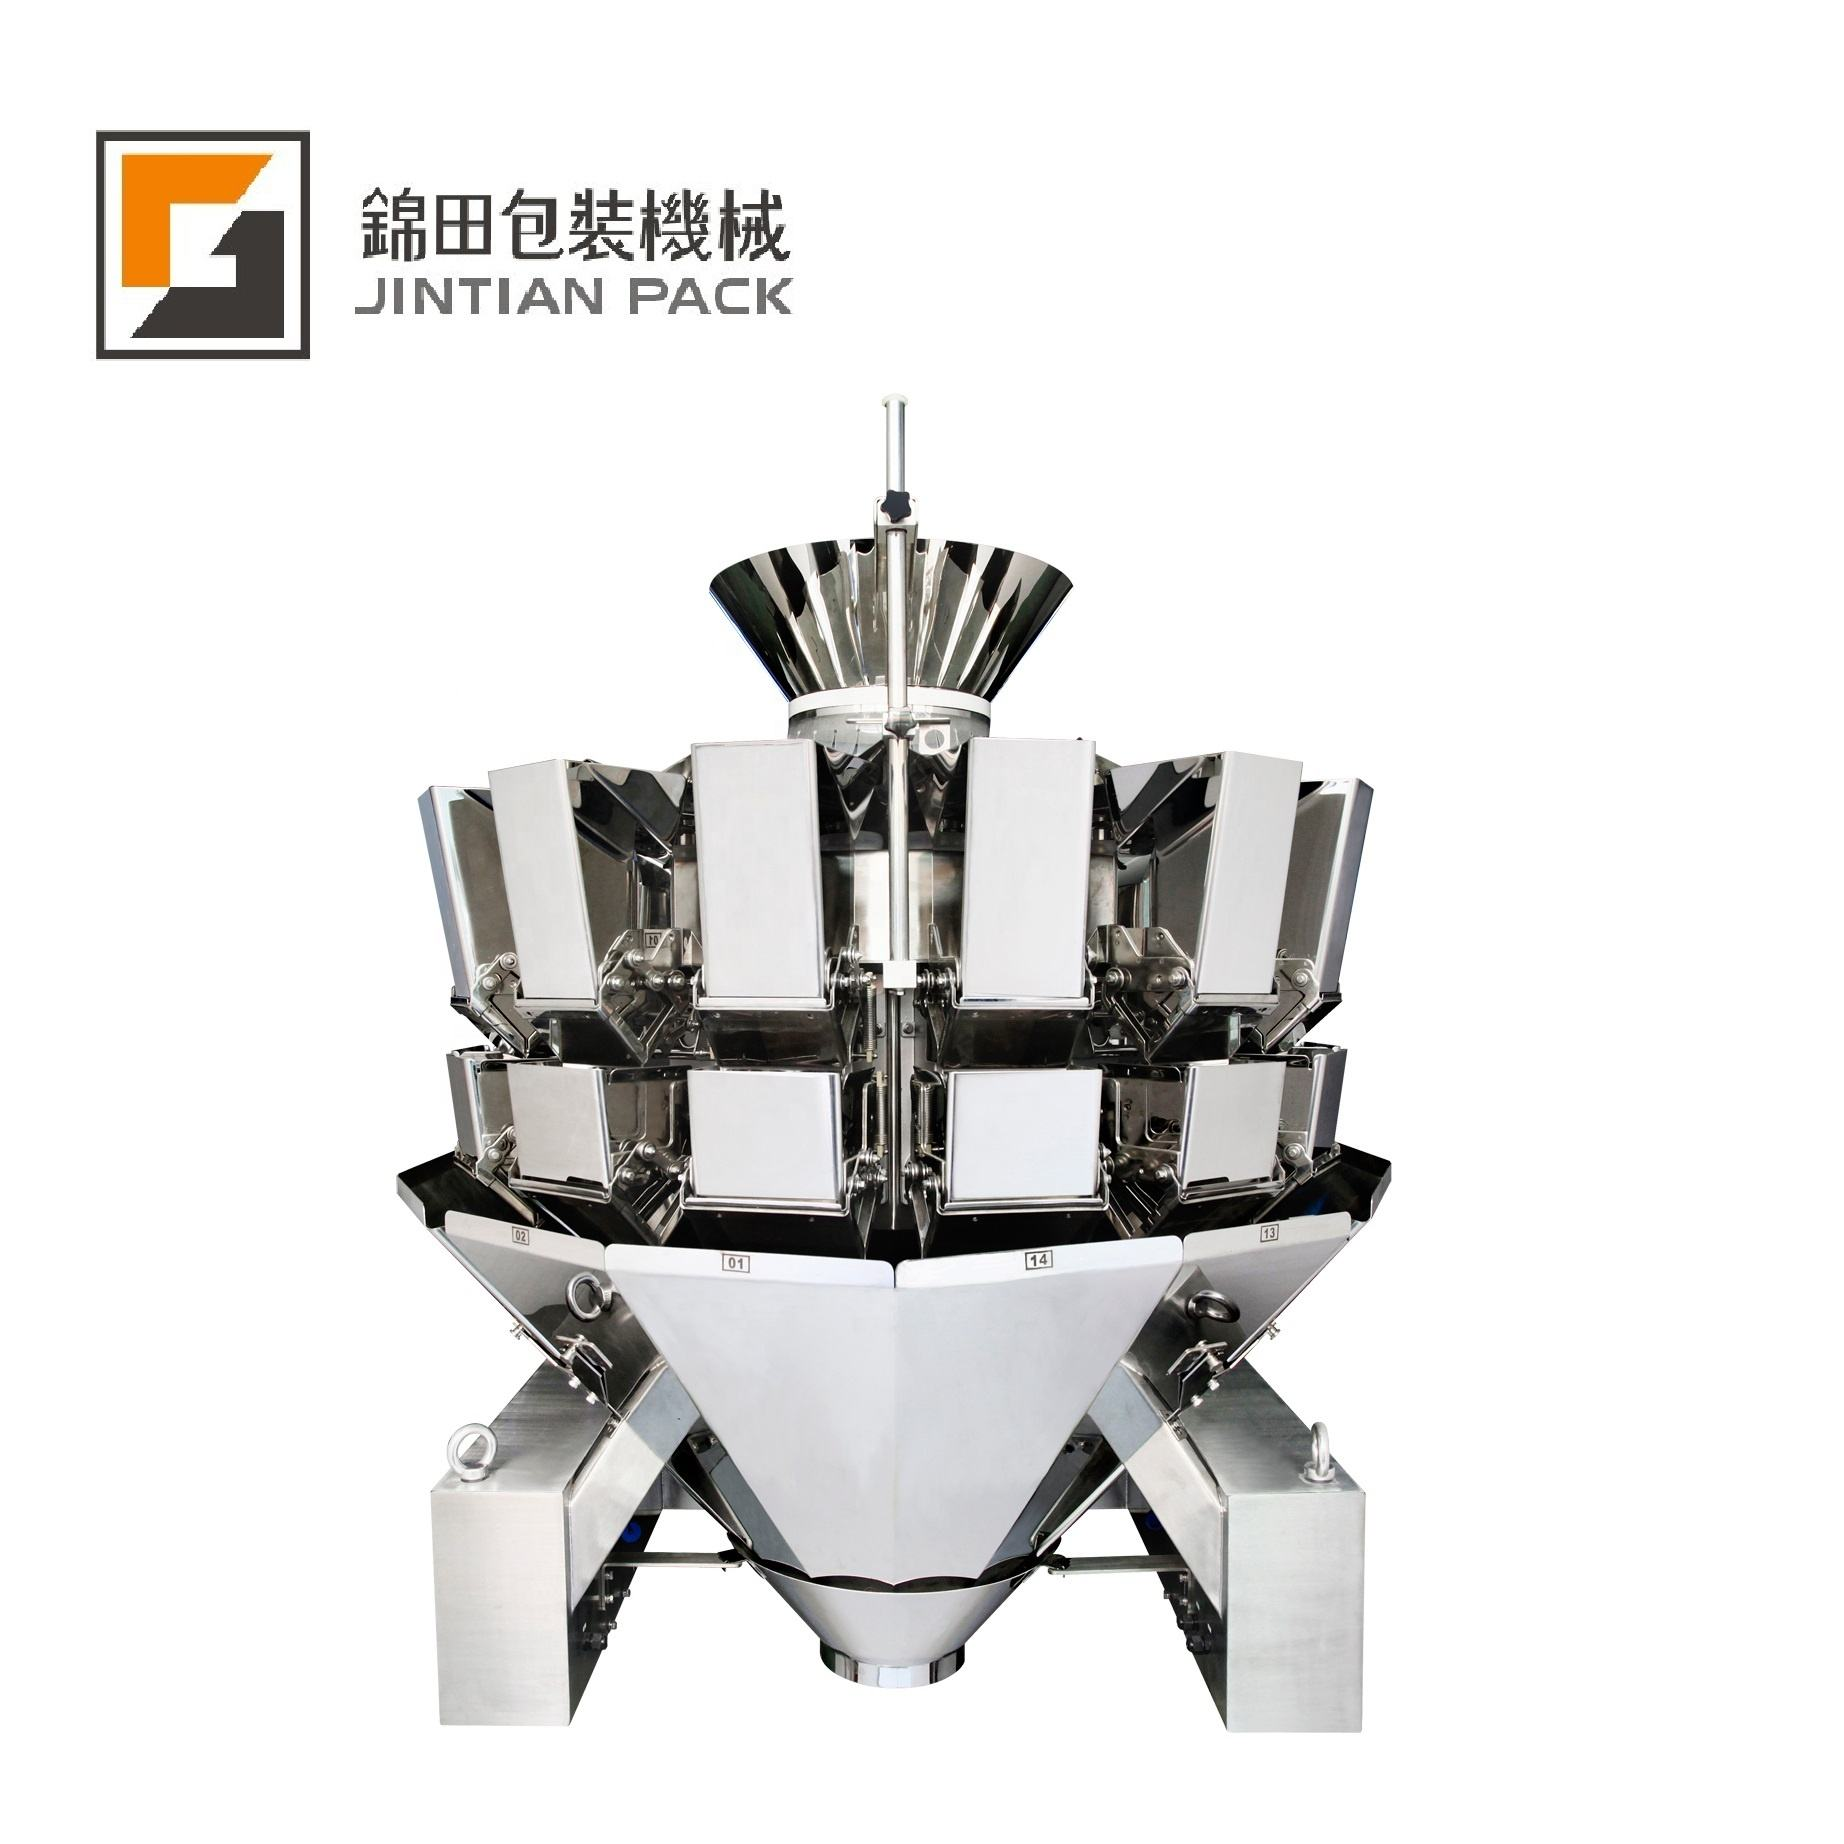 JT-14 Multihead weigher